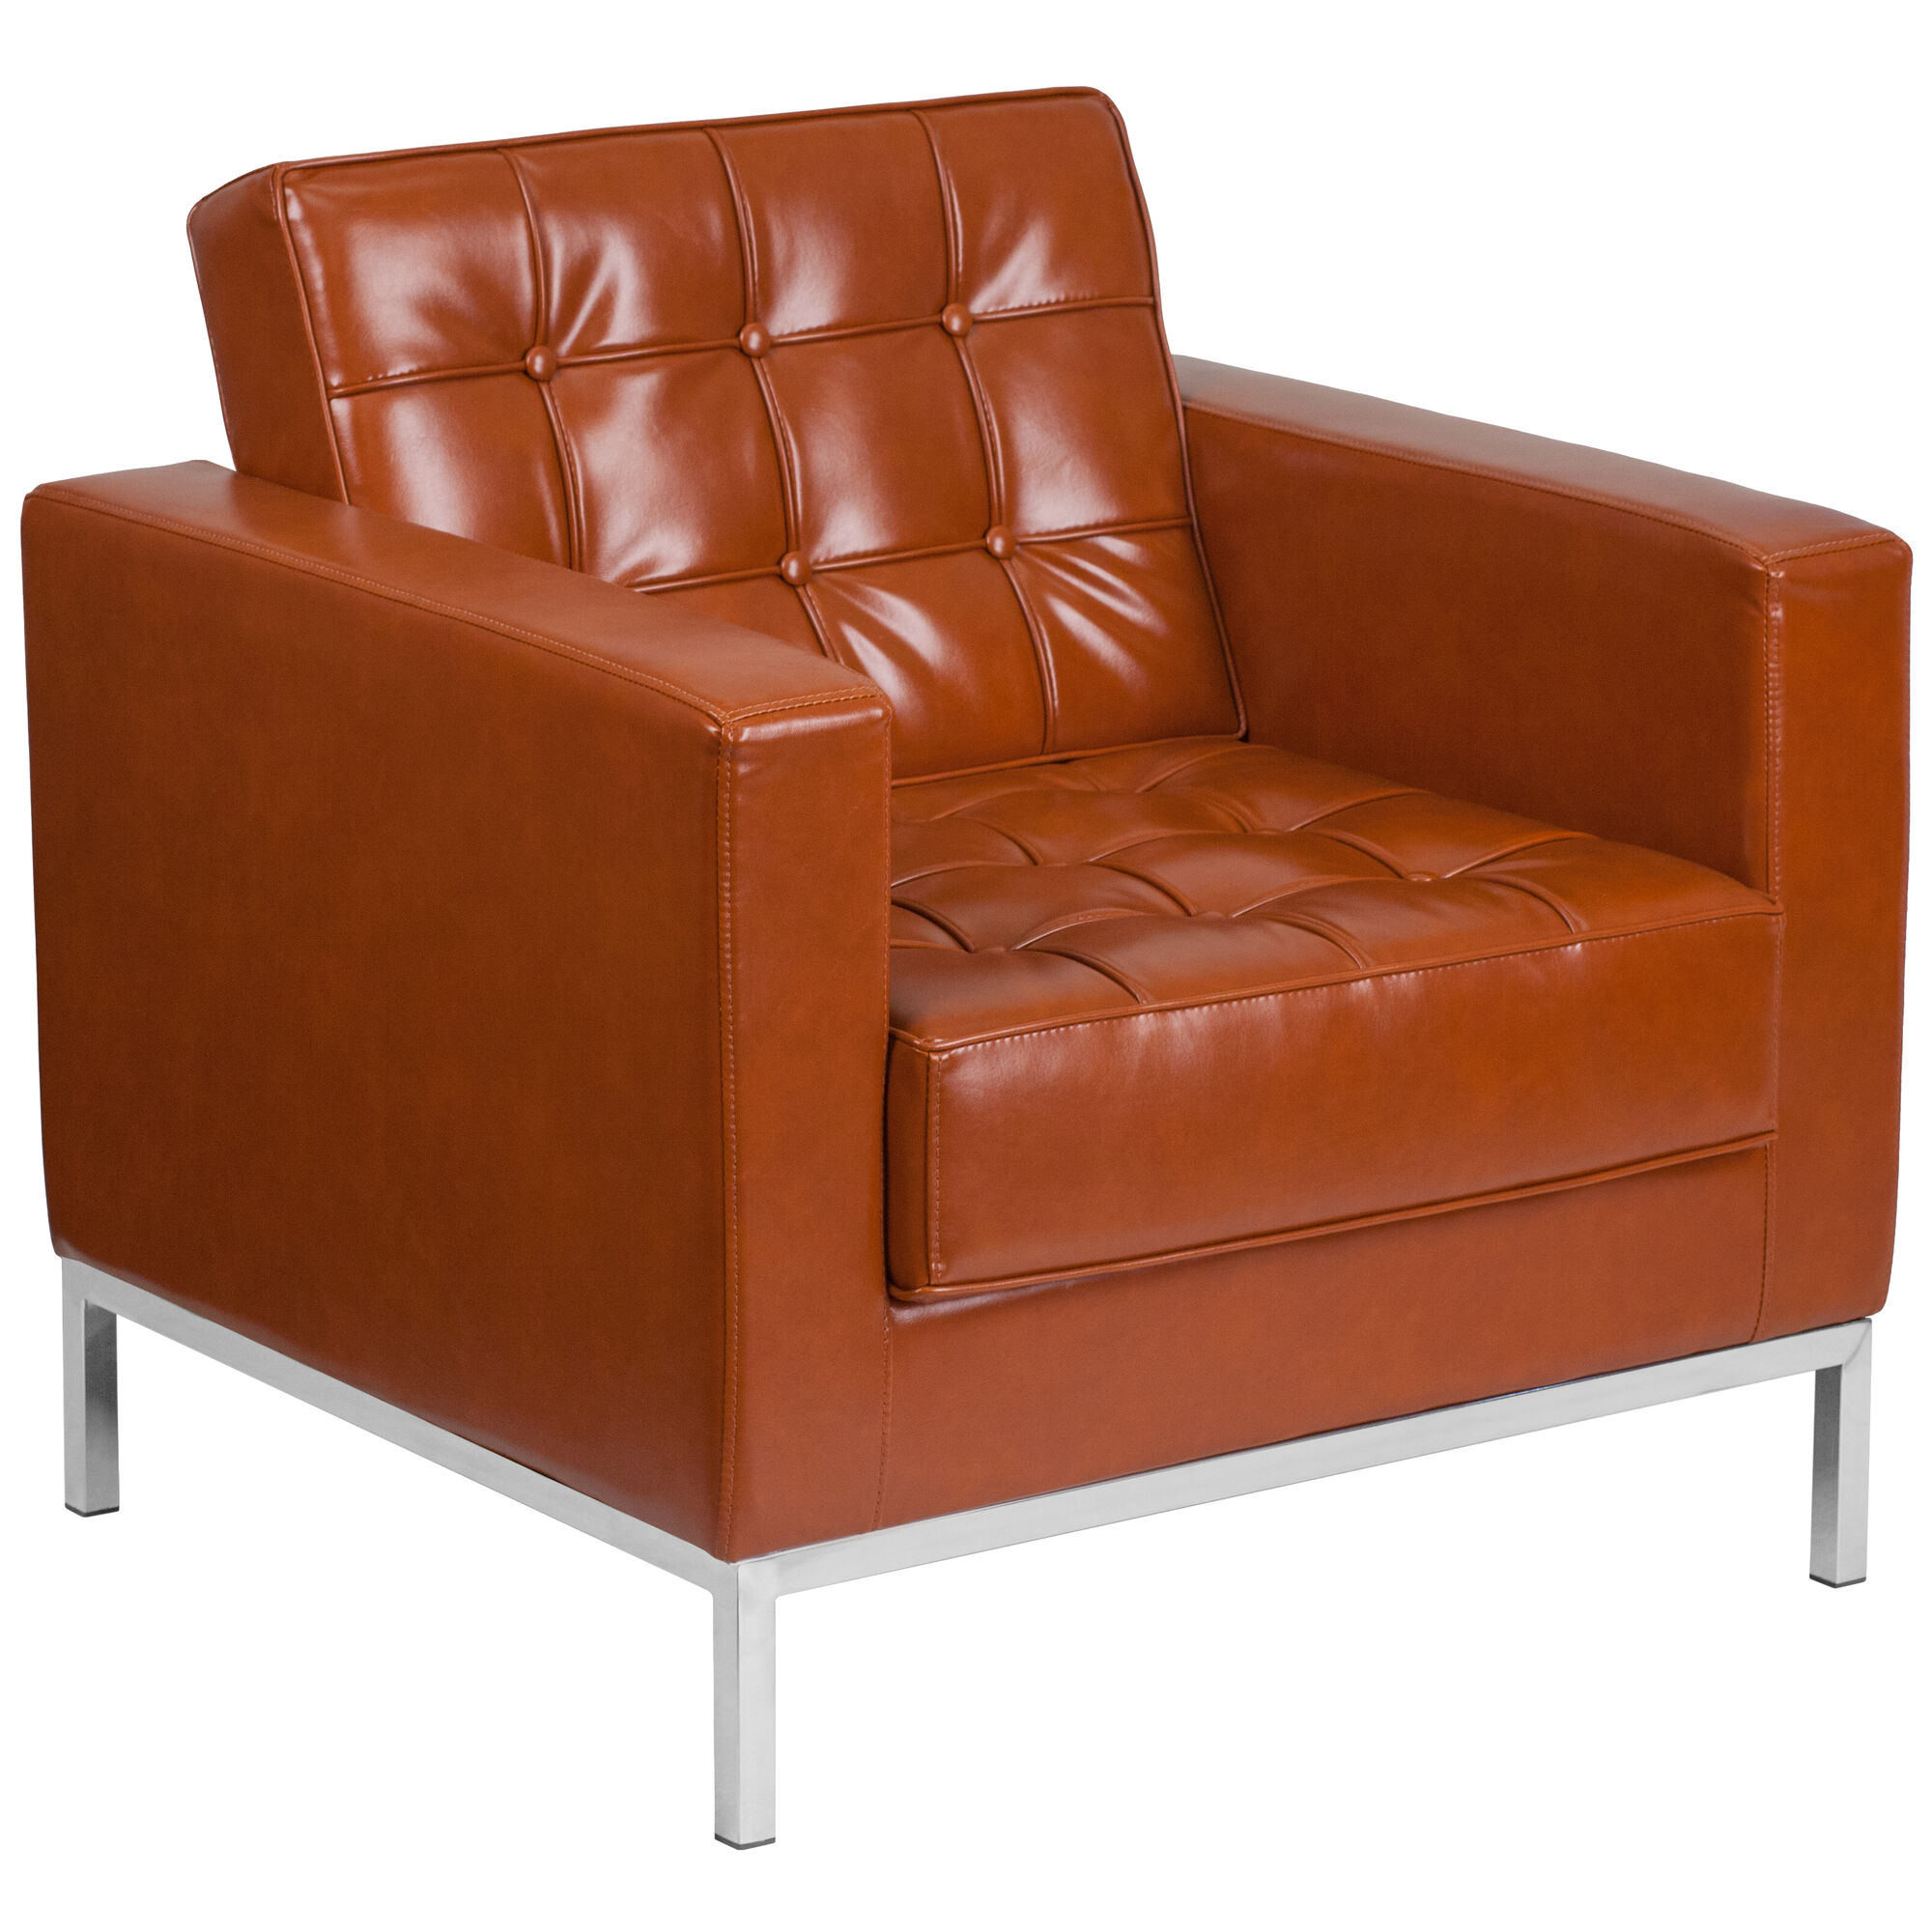 Fine Hercules Lacey Series Contemporary Cognac Leather Chair With Stainless Steel Frame Creativecarmelina Interior Chair Design Creativecarmelinacom